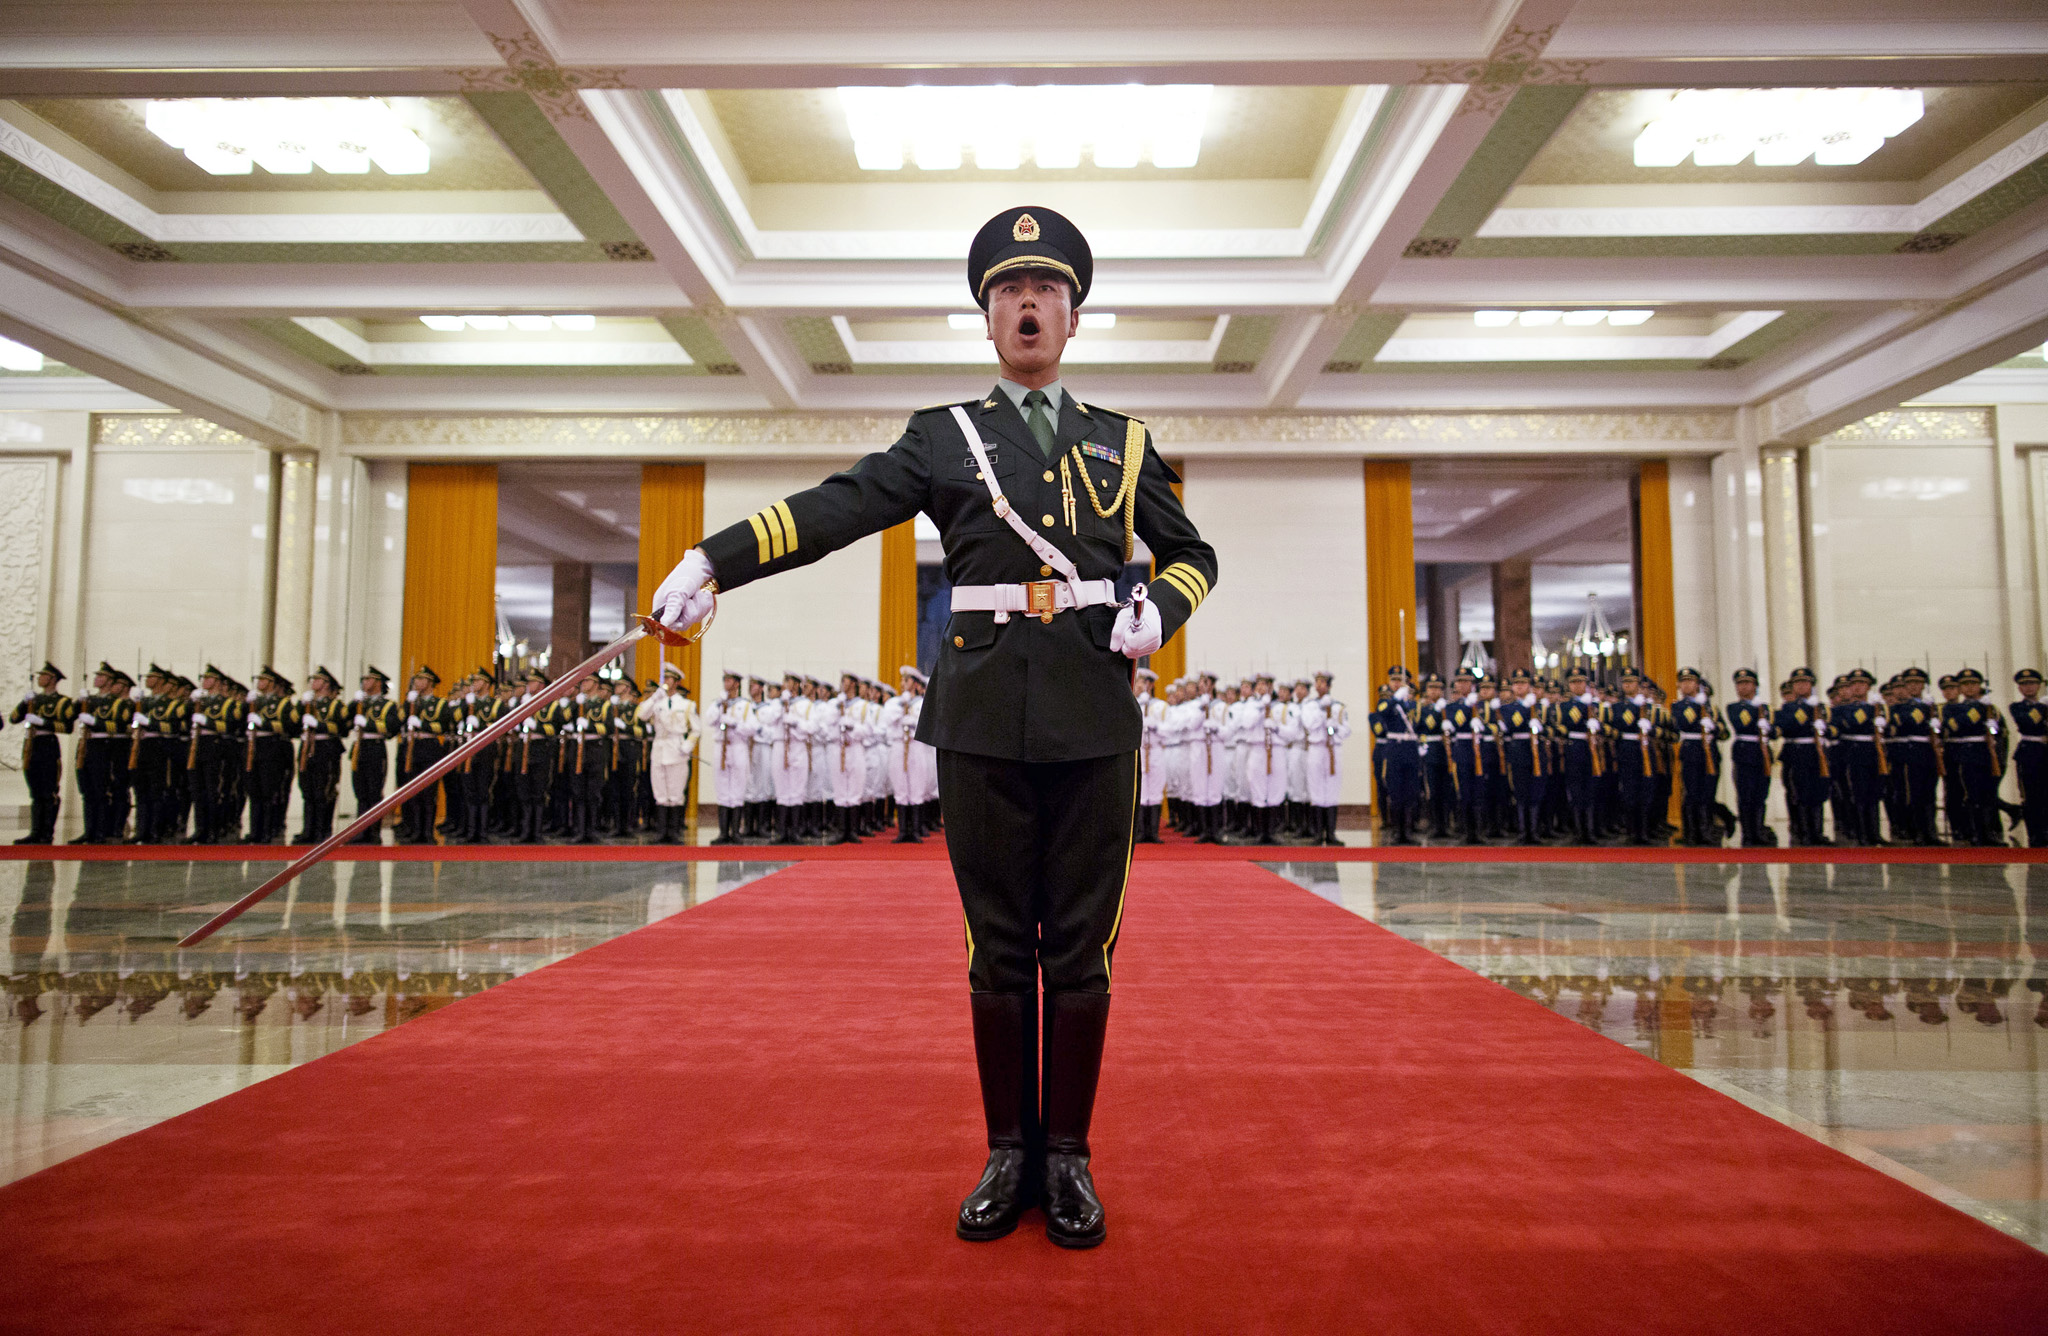 Members of an honor guard rehearse before a welcome ceremony held by Chinese President Xi Jinping for visiting Israeli President Shimon Peres at the Great Hall of the People in Beijing Tuesday, April 8, 2014. (AP Photo/Alexander F. Yuan)